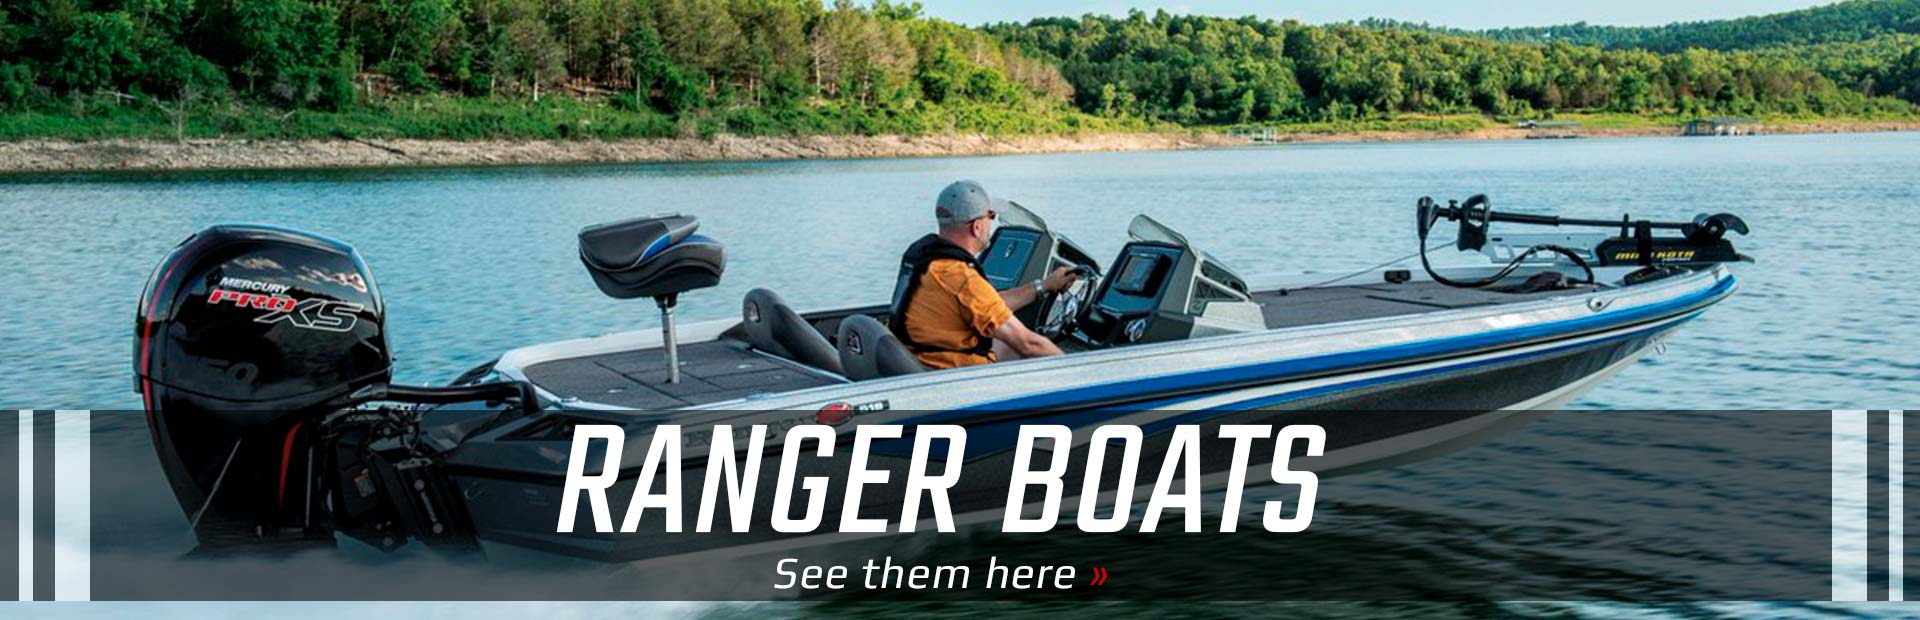 Ranger Boats: Click here to see the models.